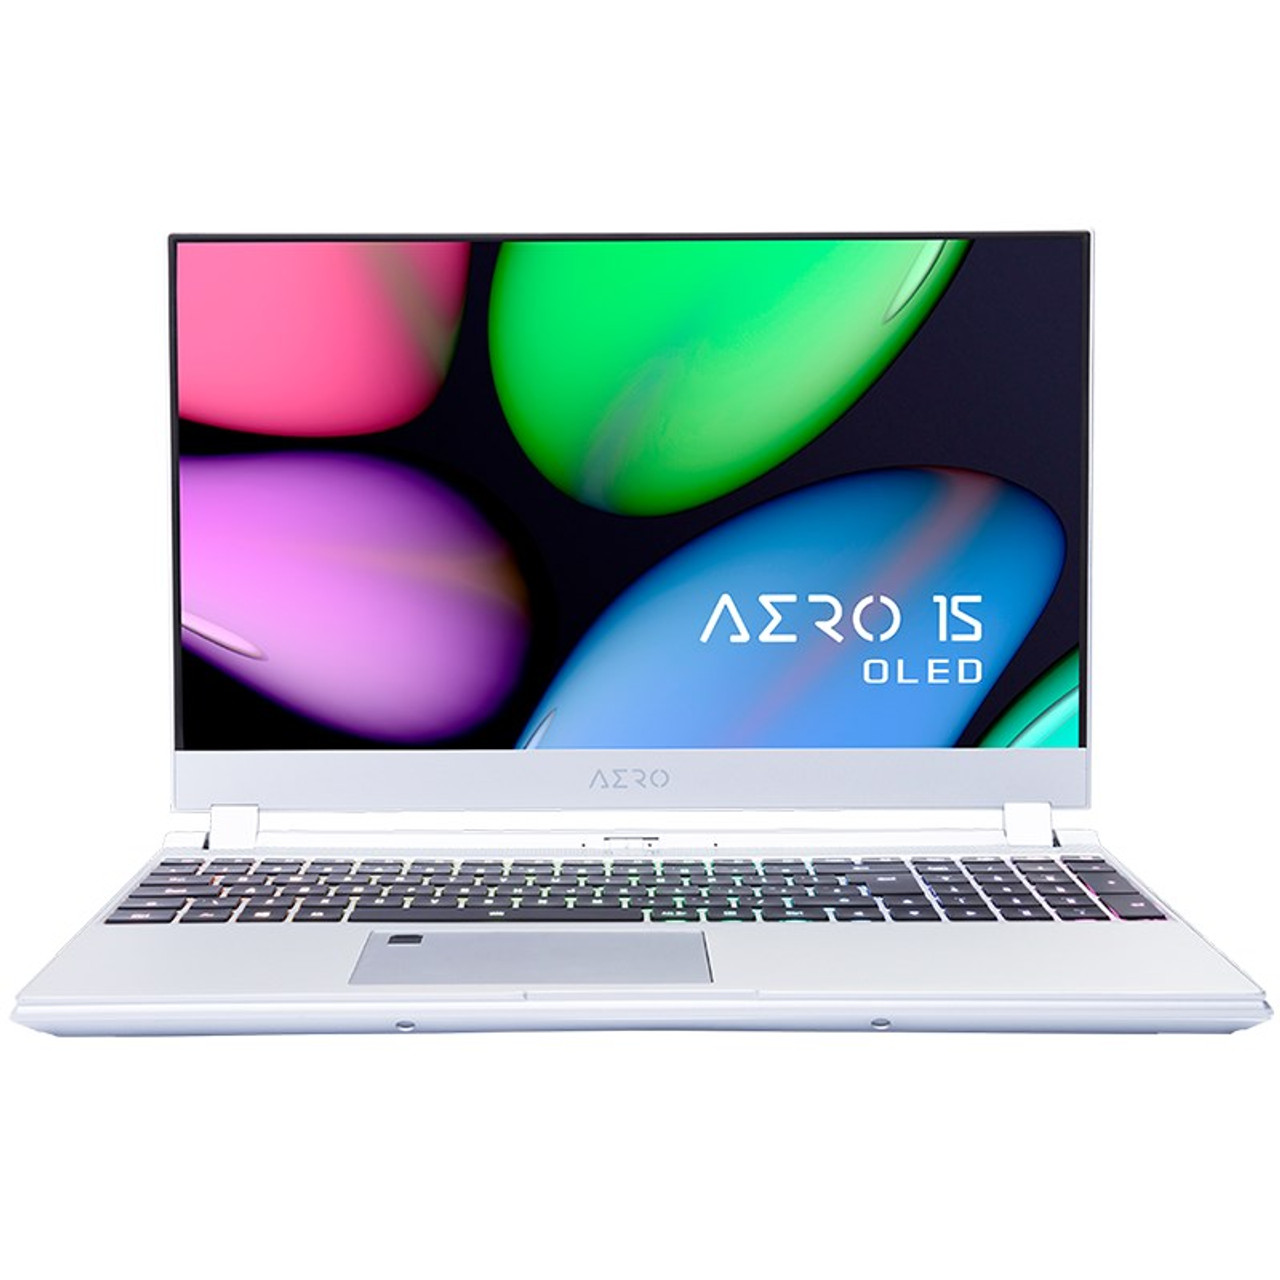 Image for Gigabyte AERO 15 OLED 15.6in 4K Laptop i7-9750H 32GB 1TB RTX2080 W10P CX Computer Superstore